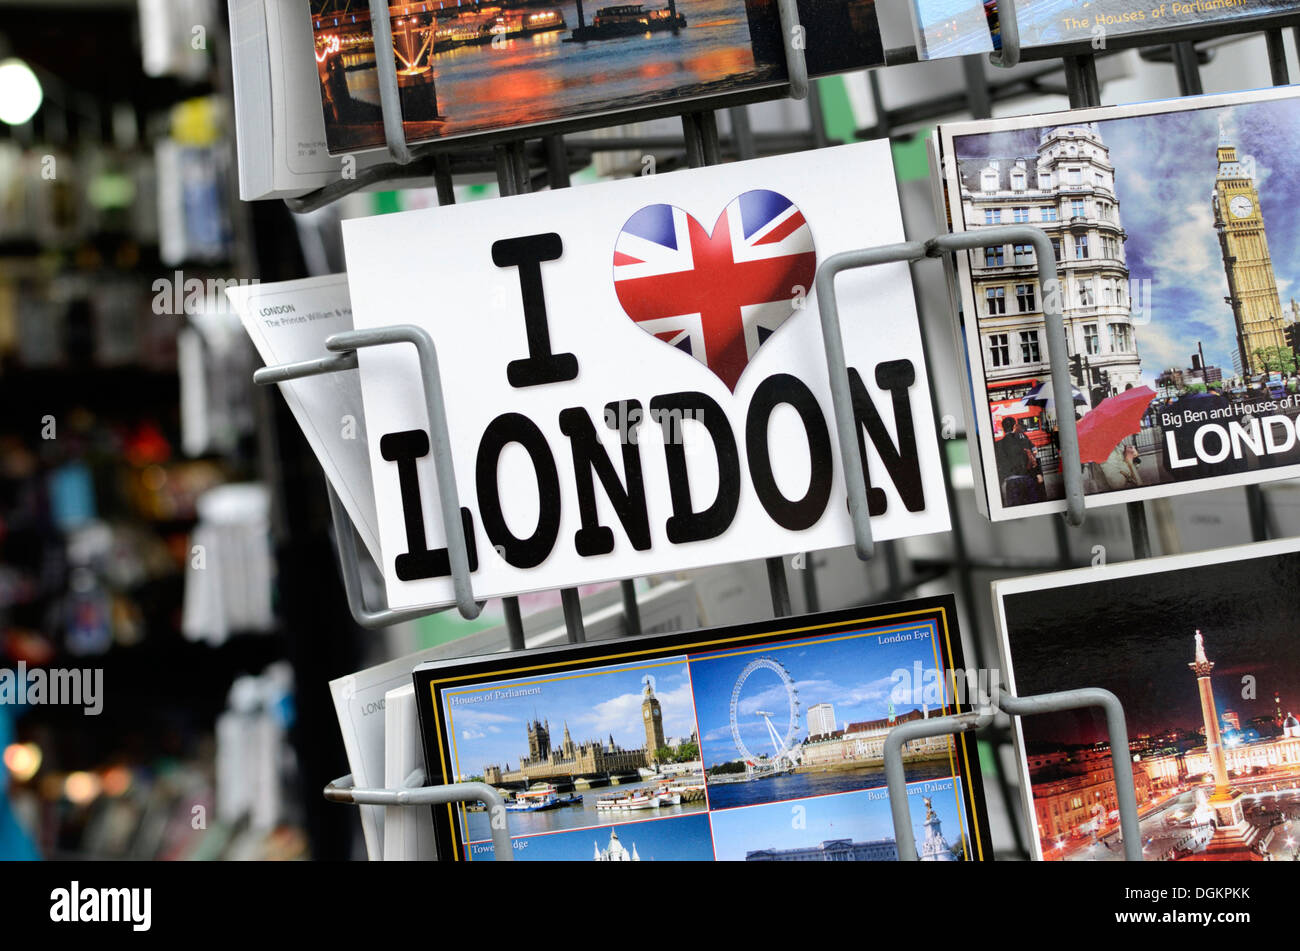 London postcards on a stand outside a souvenir shop. - Stock Image